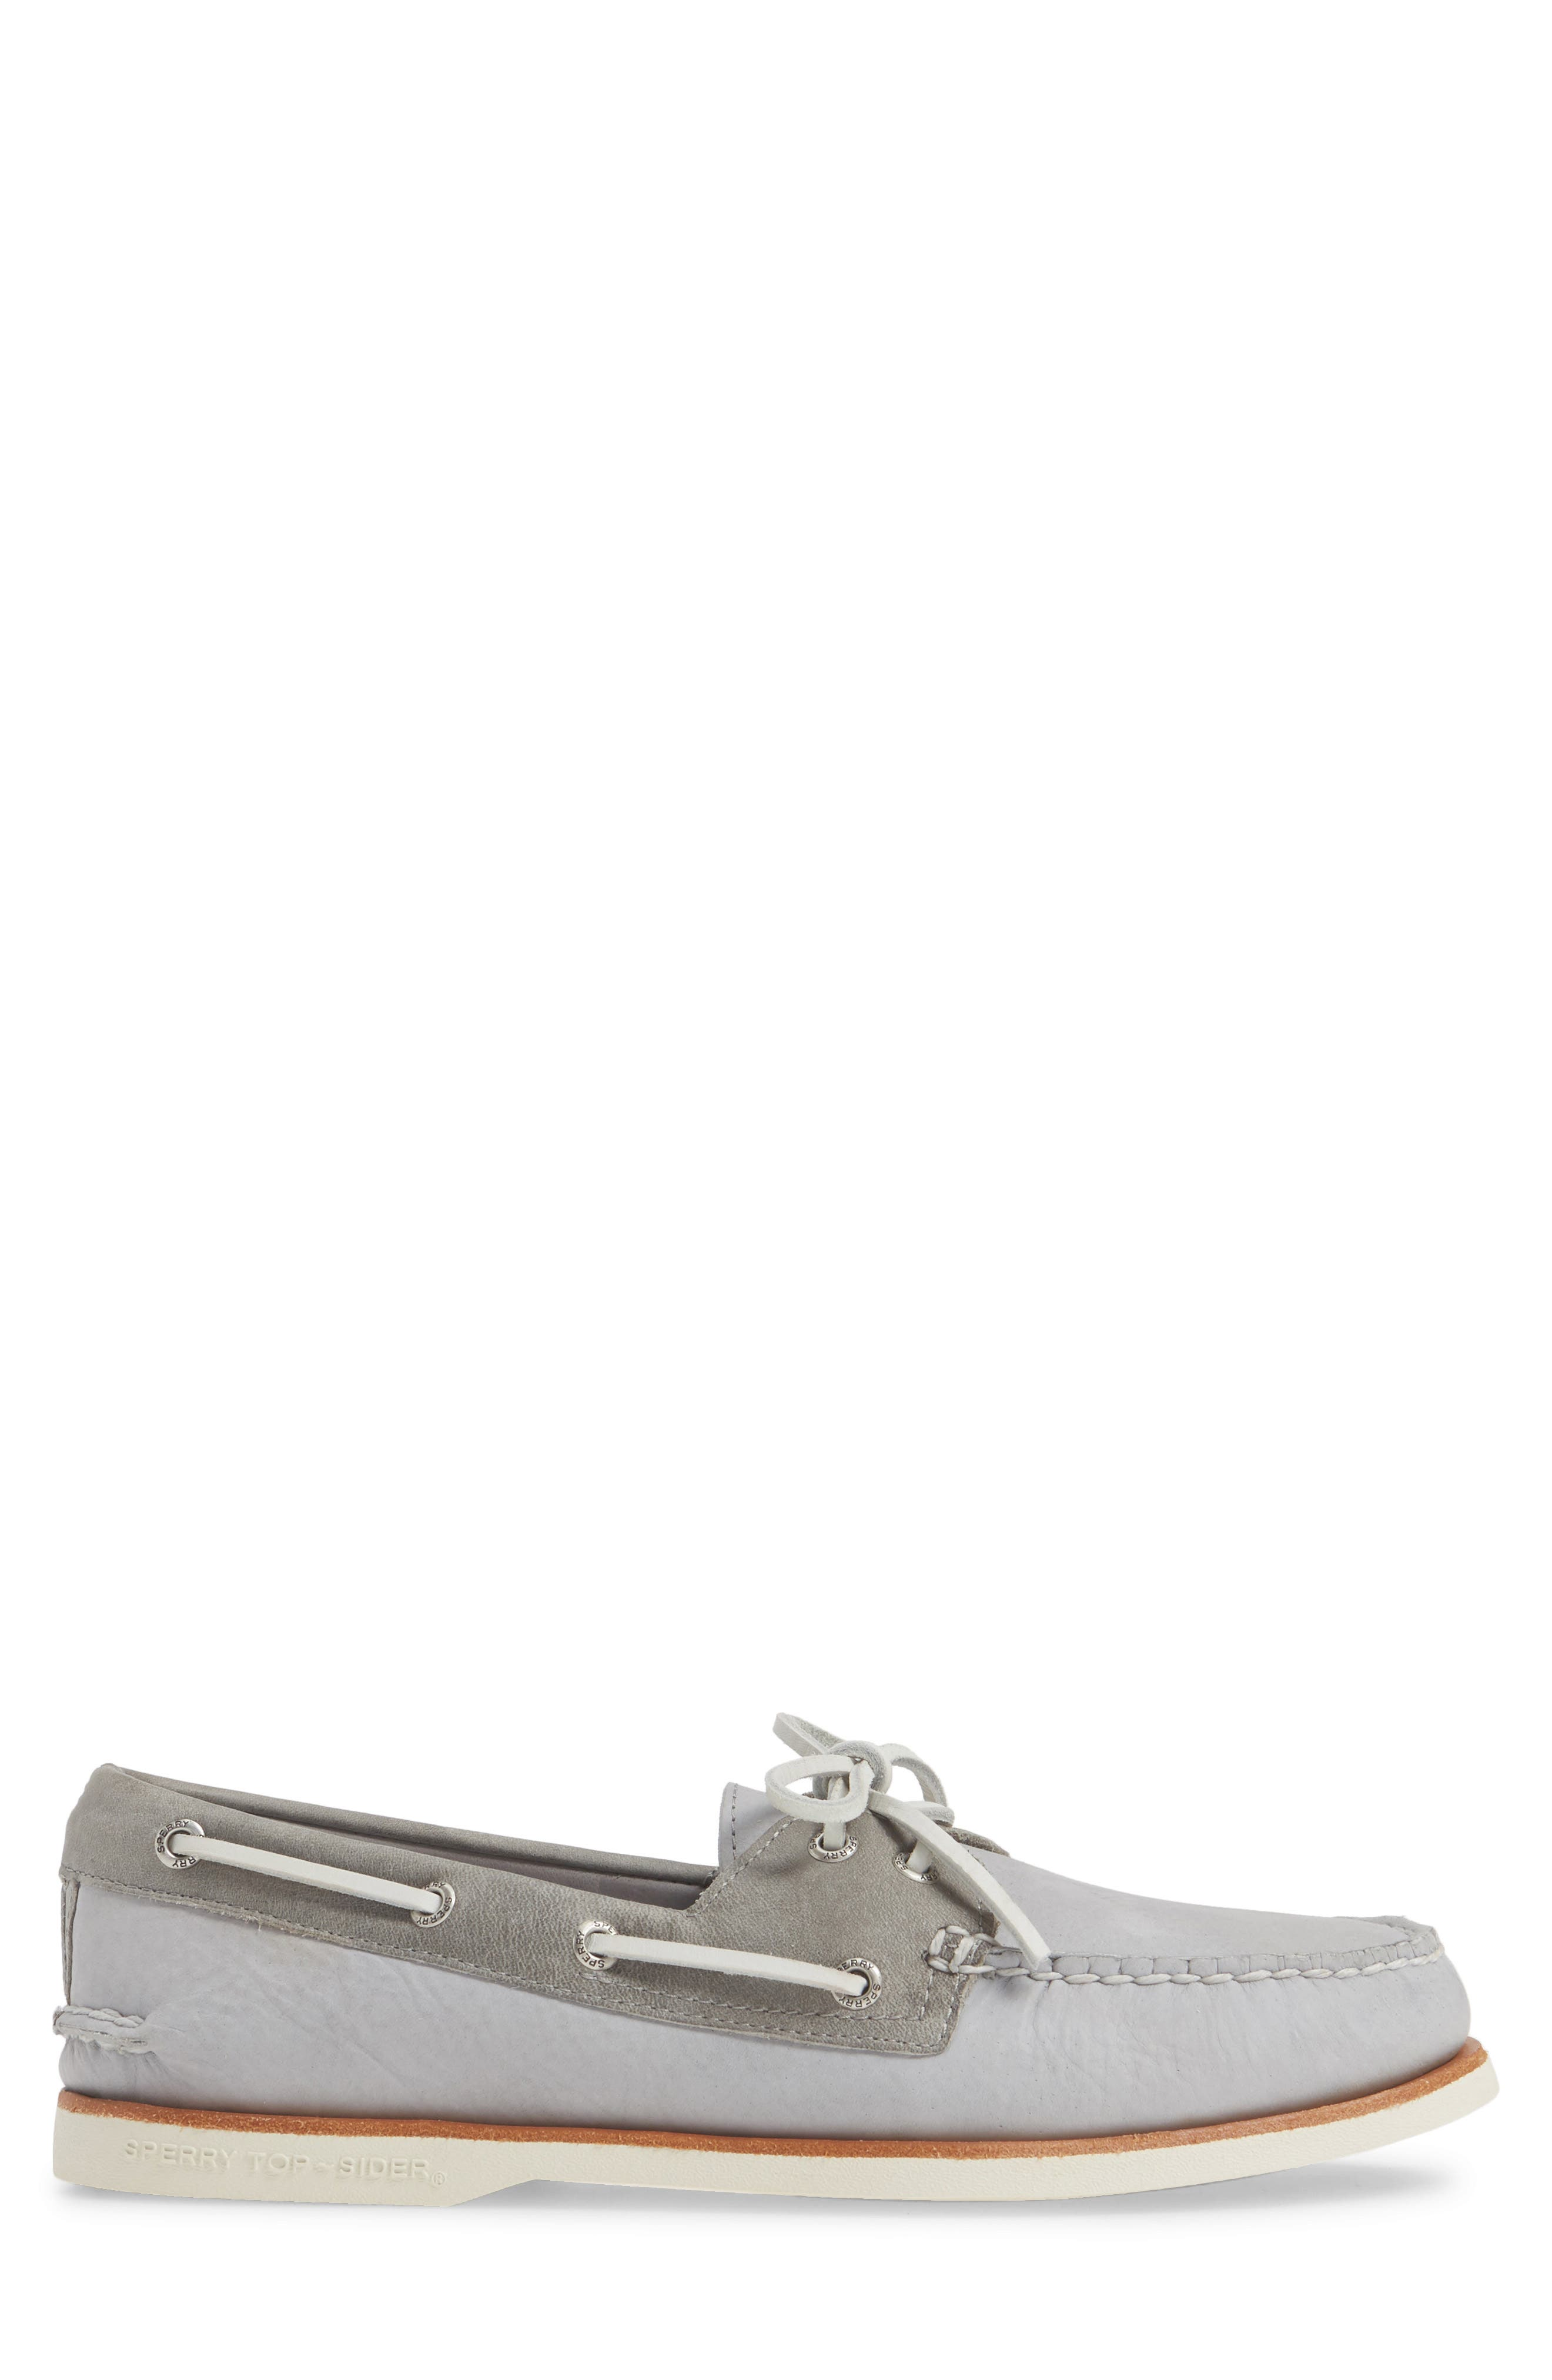 ,                             'Gold Cup - Authentic Original' Boat Shoe,                             Alternate thumbnail 3, color,                             GREY/GREY LEATHER